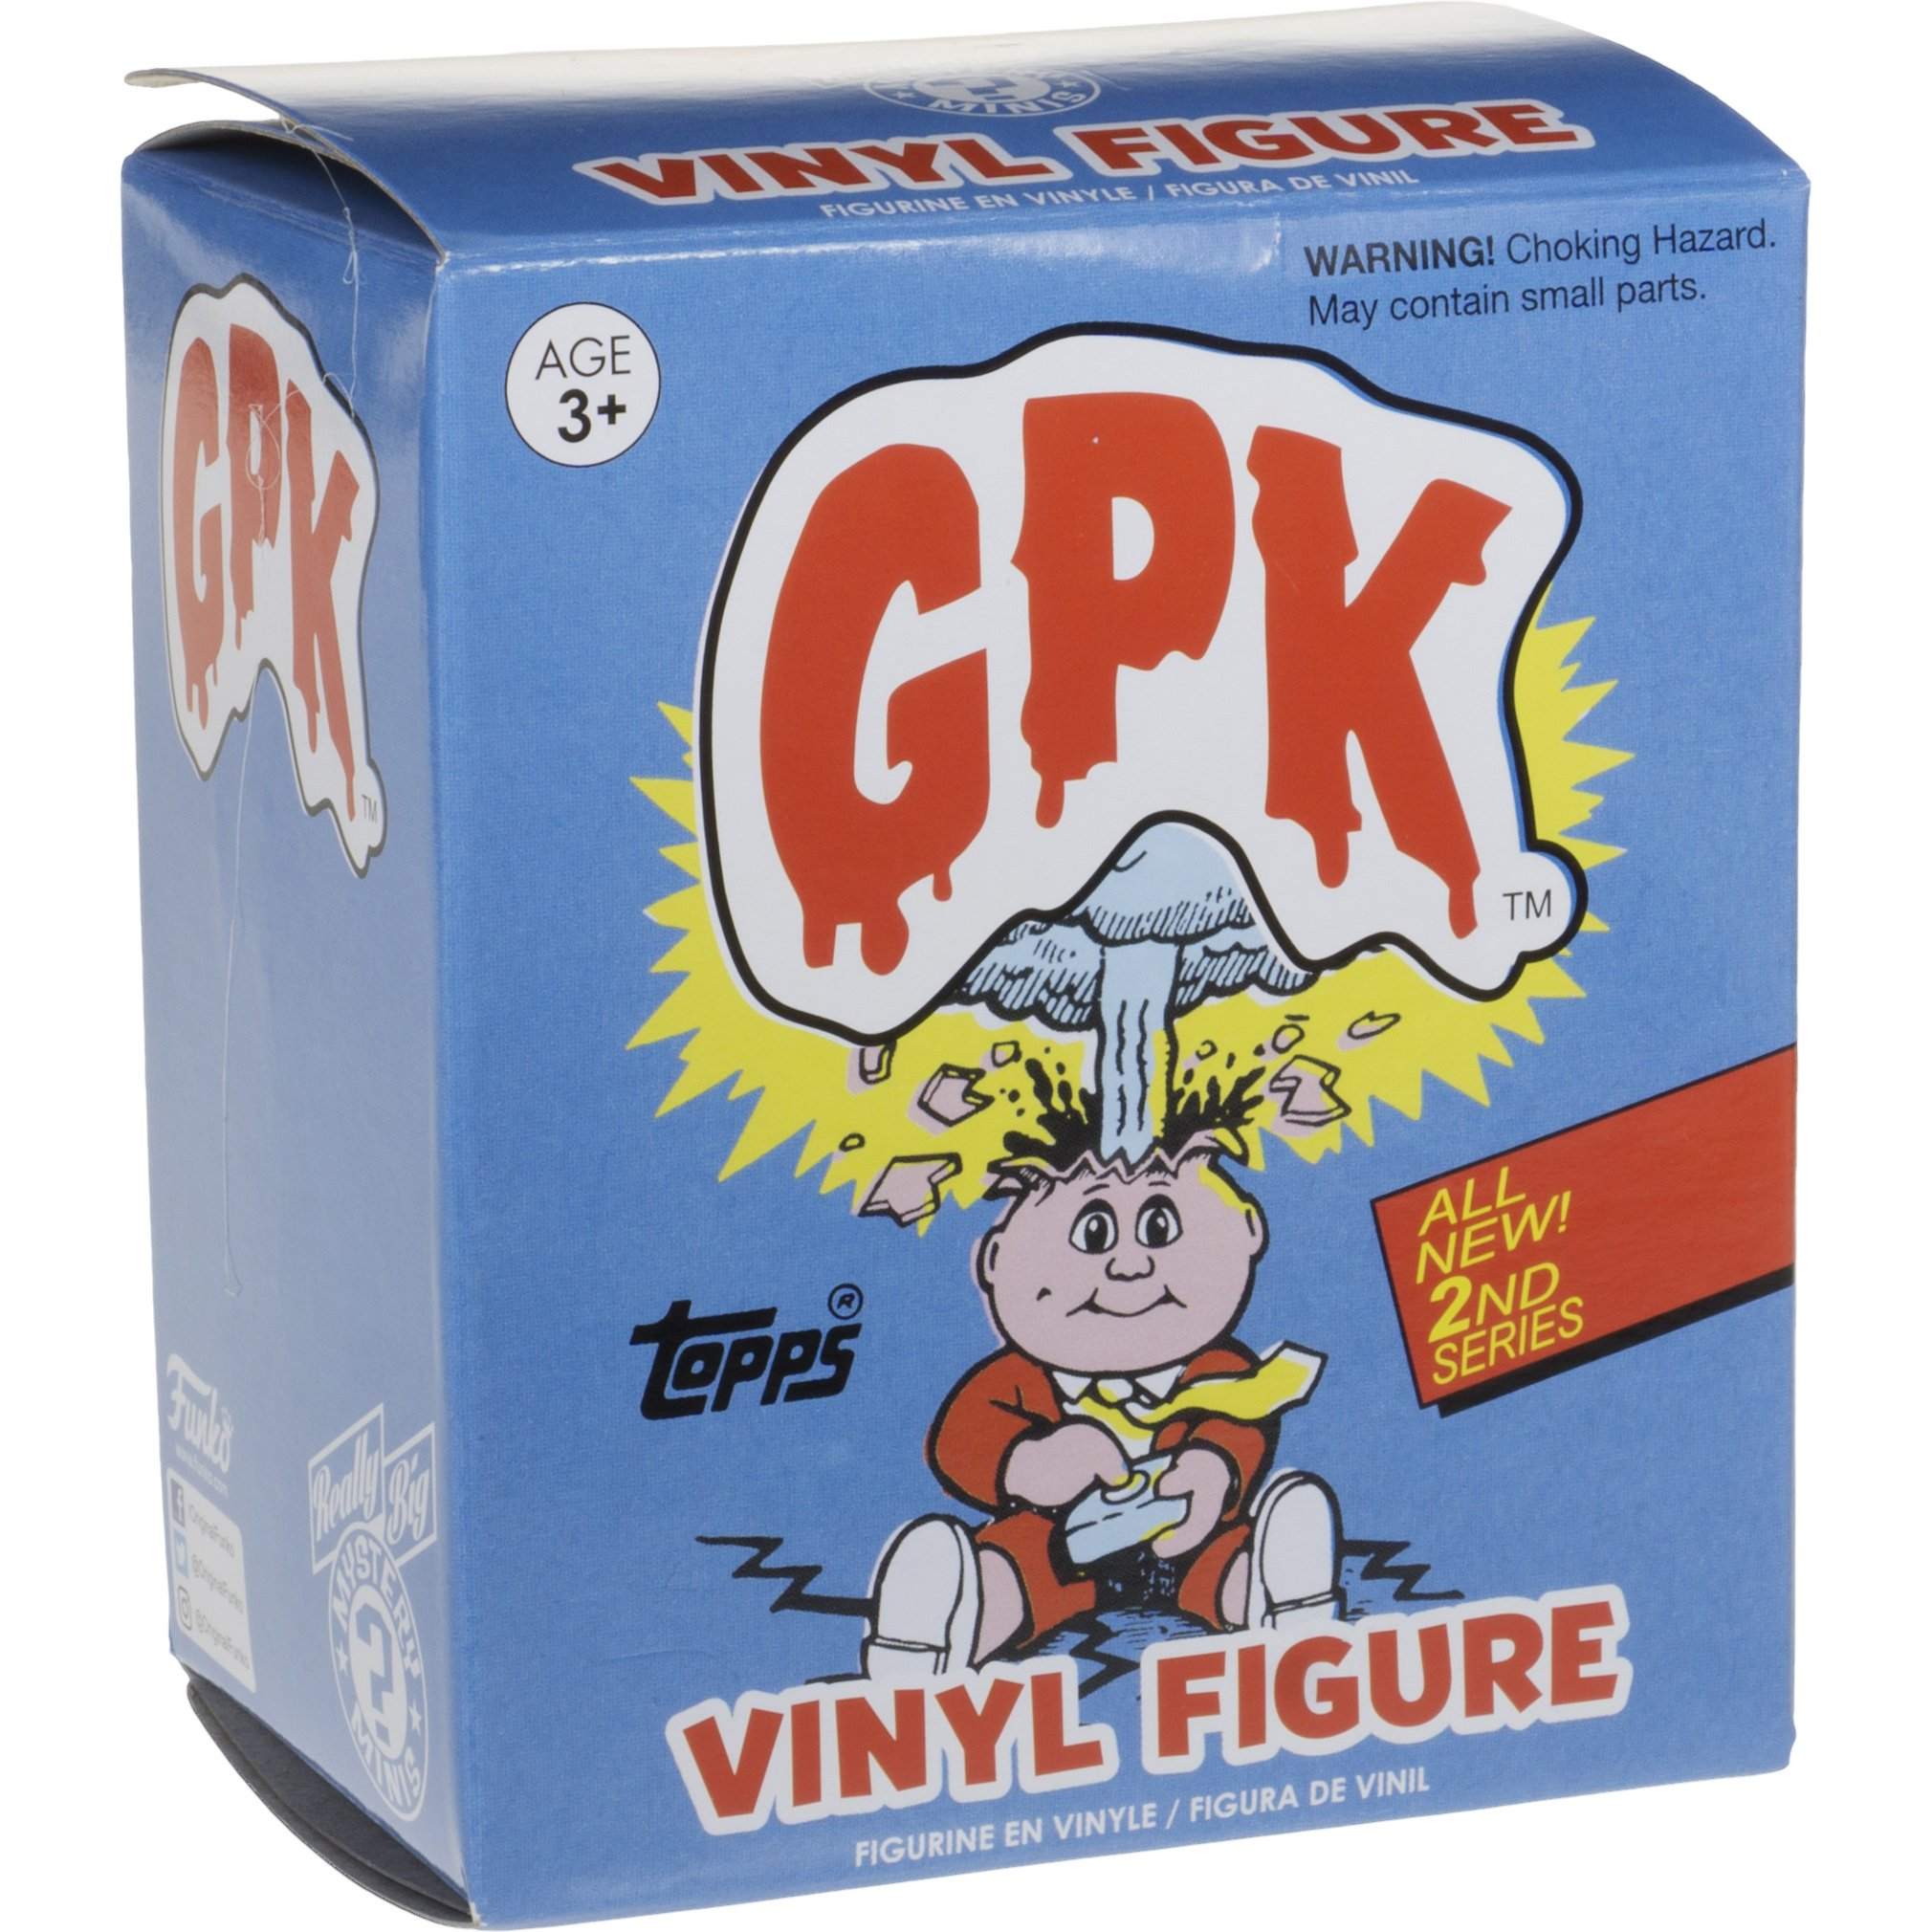 Eerie Eric: ~3'' Garbage Pail Kids x Funko Mystery Minis Mini-Figure Series #2 + 1 FREE GPK Trading Card/Sticker Bundle (108454) by Garbage Pail Kids (Image #4)